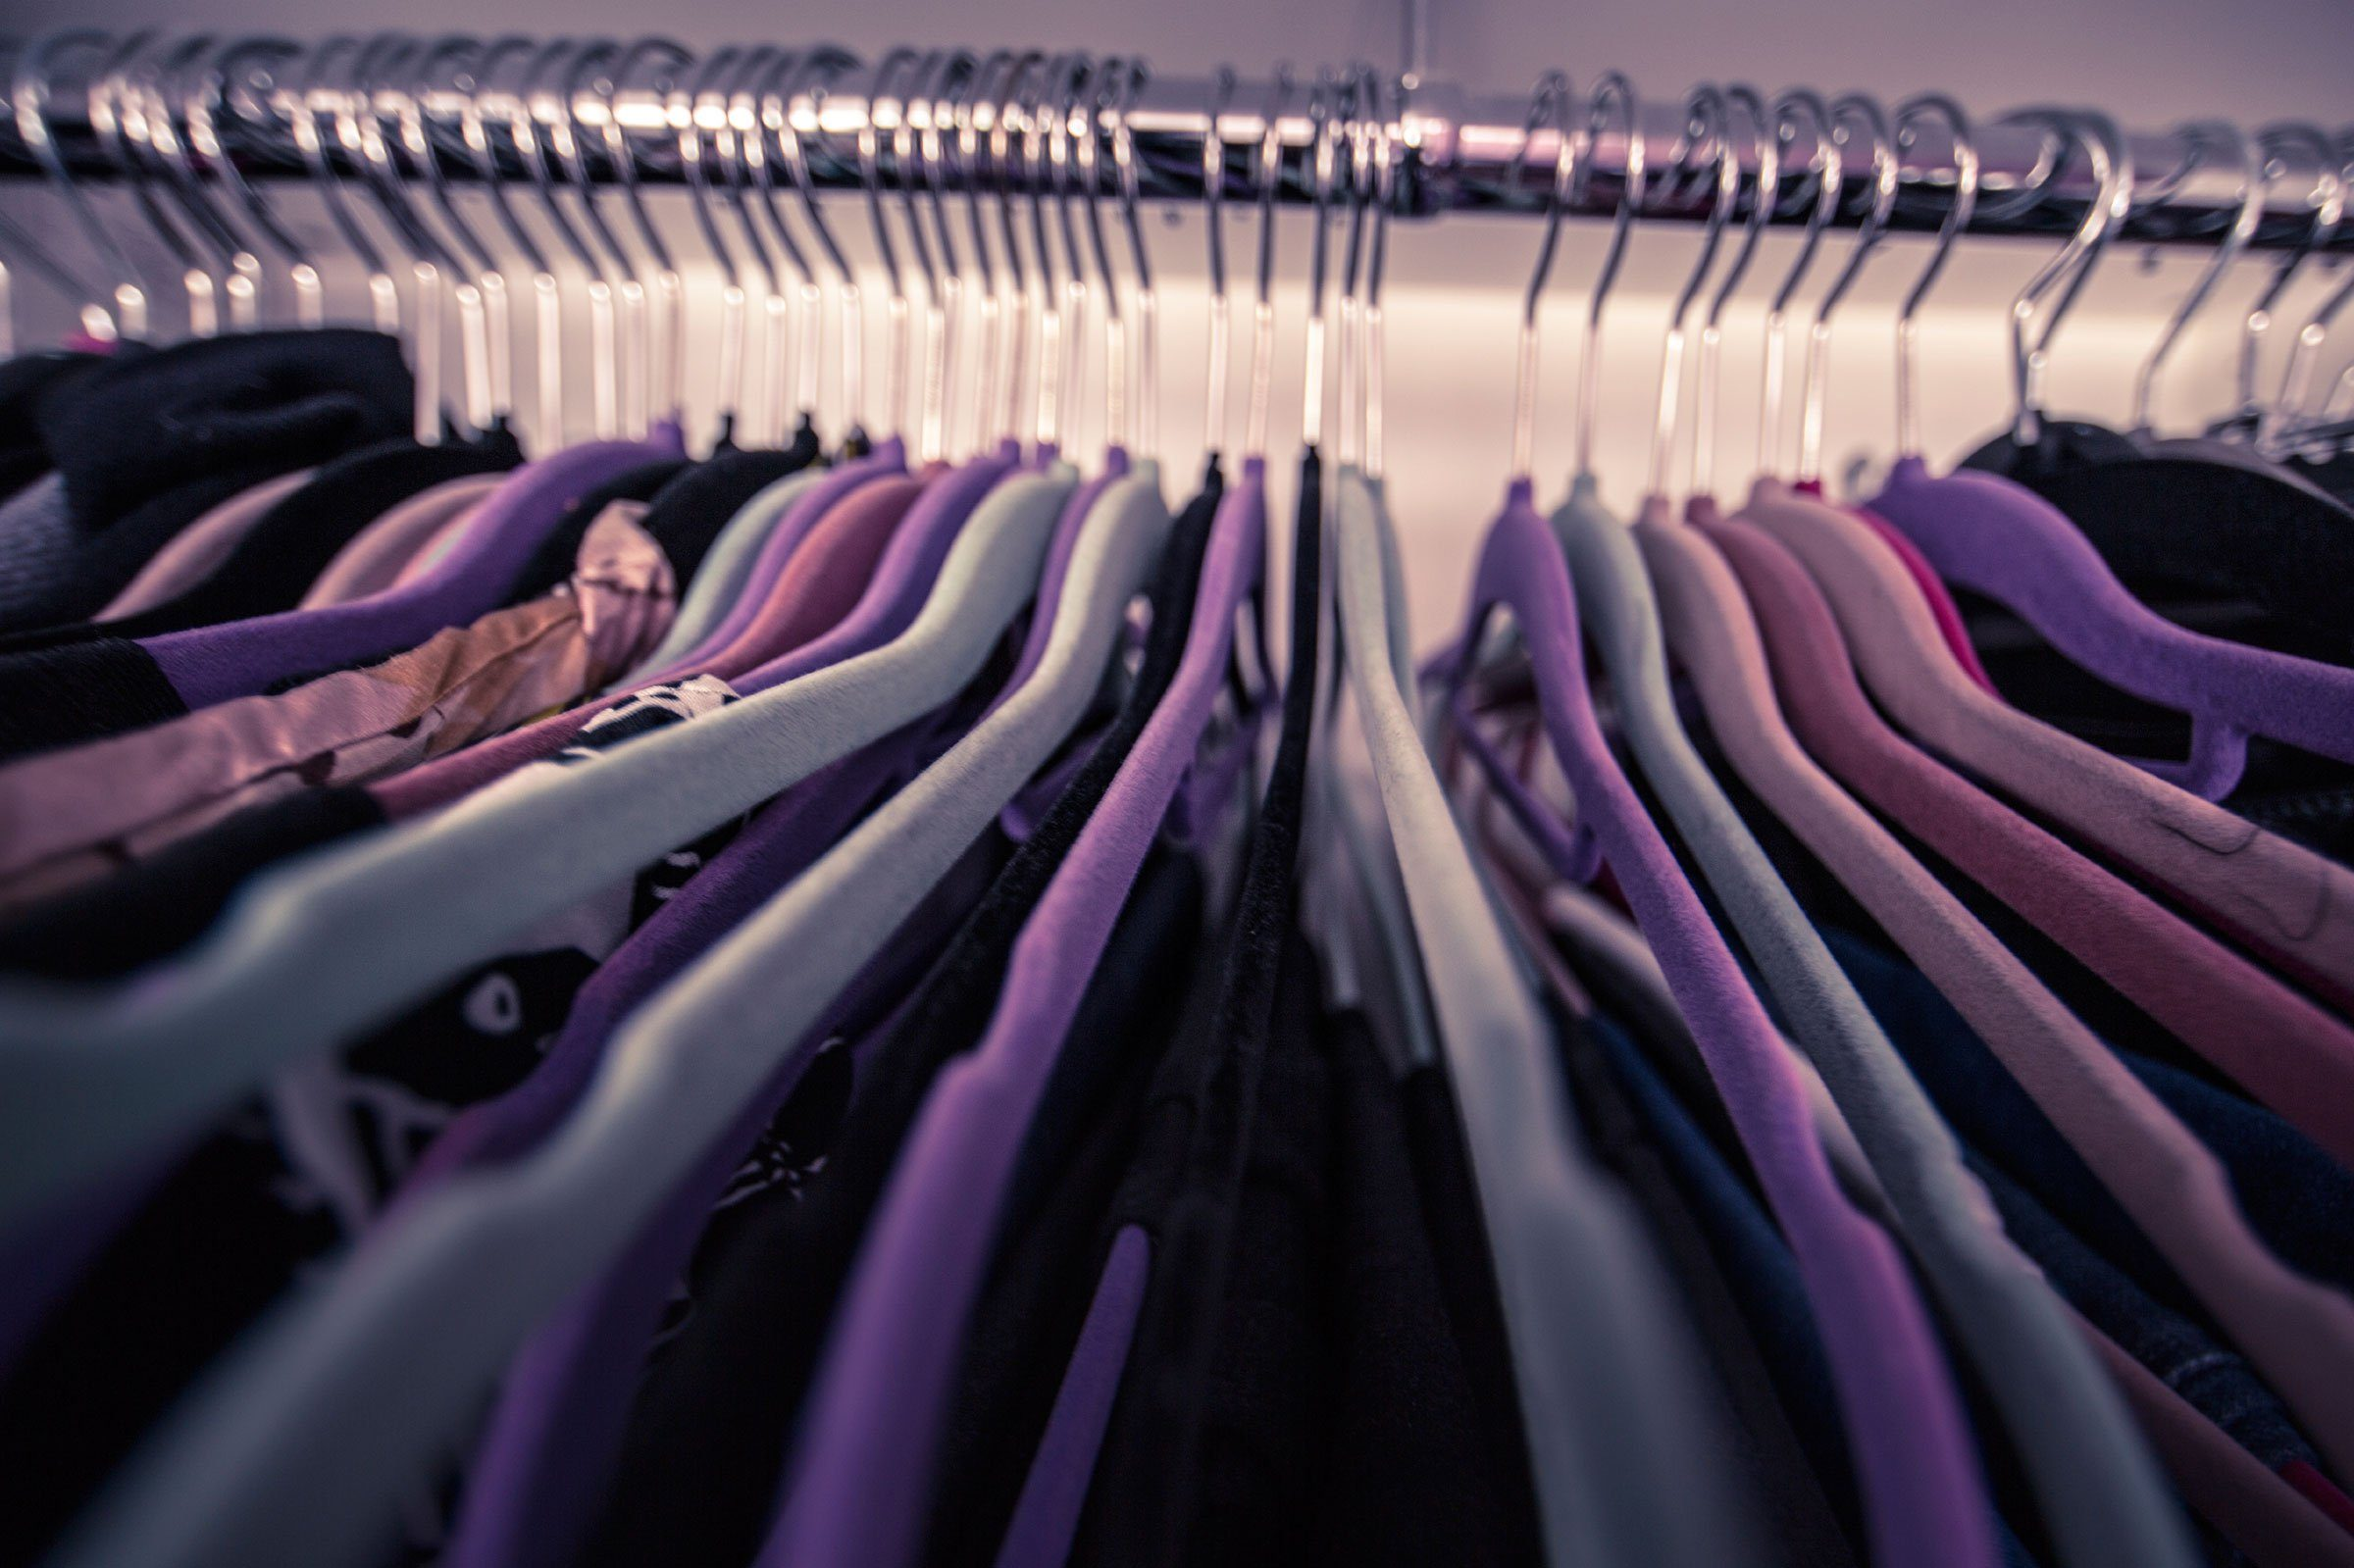 13 things personal organizers wont tell you hangers